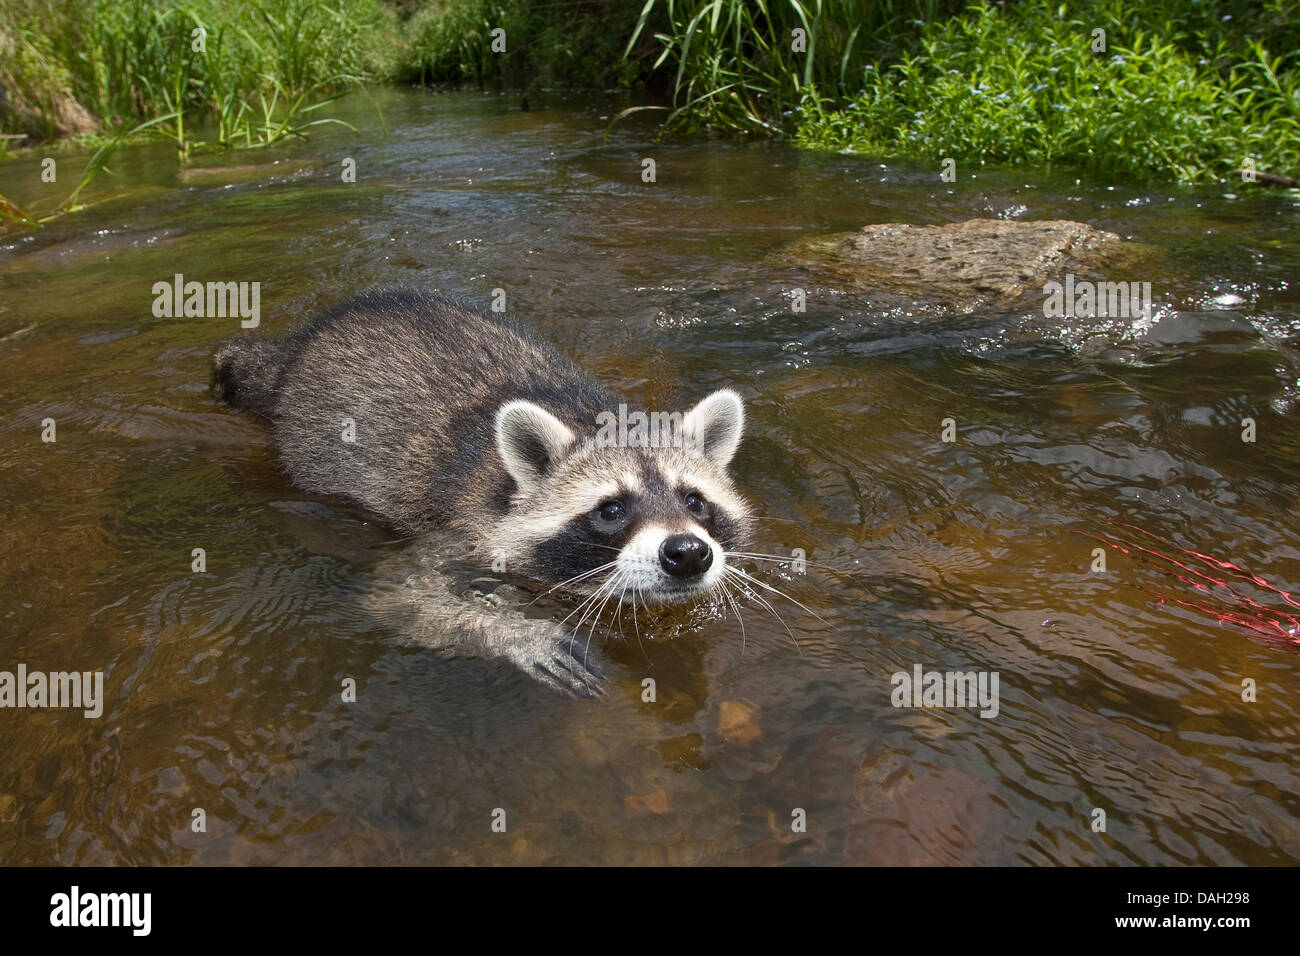 common raccoon (Procyon lotor), 4 months old male swimming in the creek, Germany - Stock Image